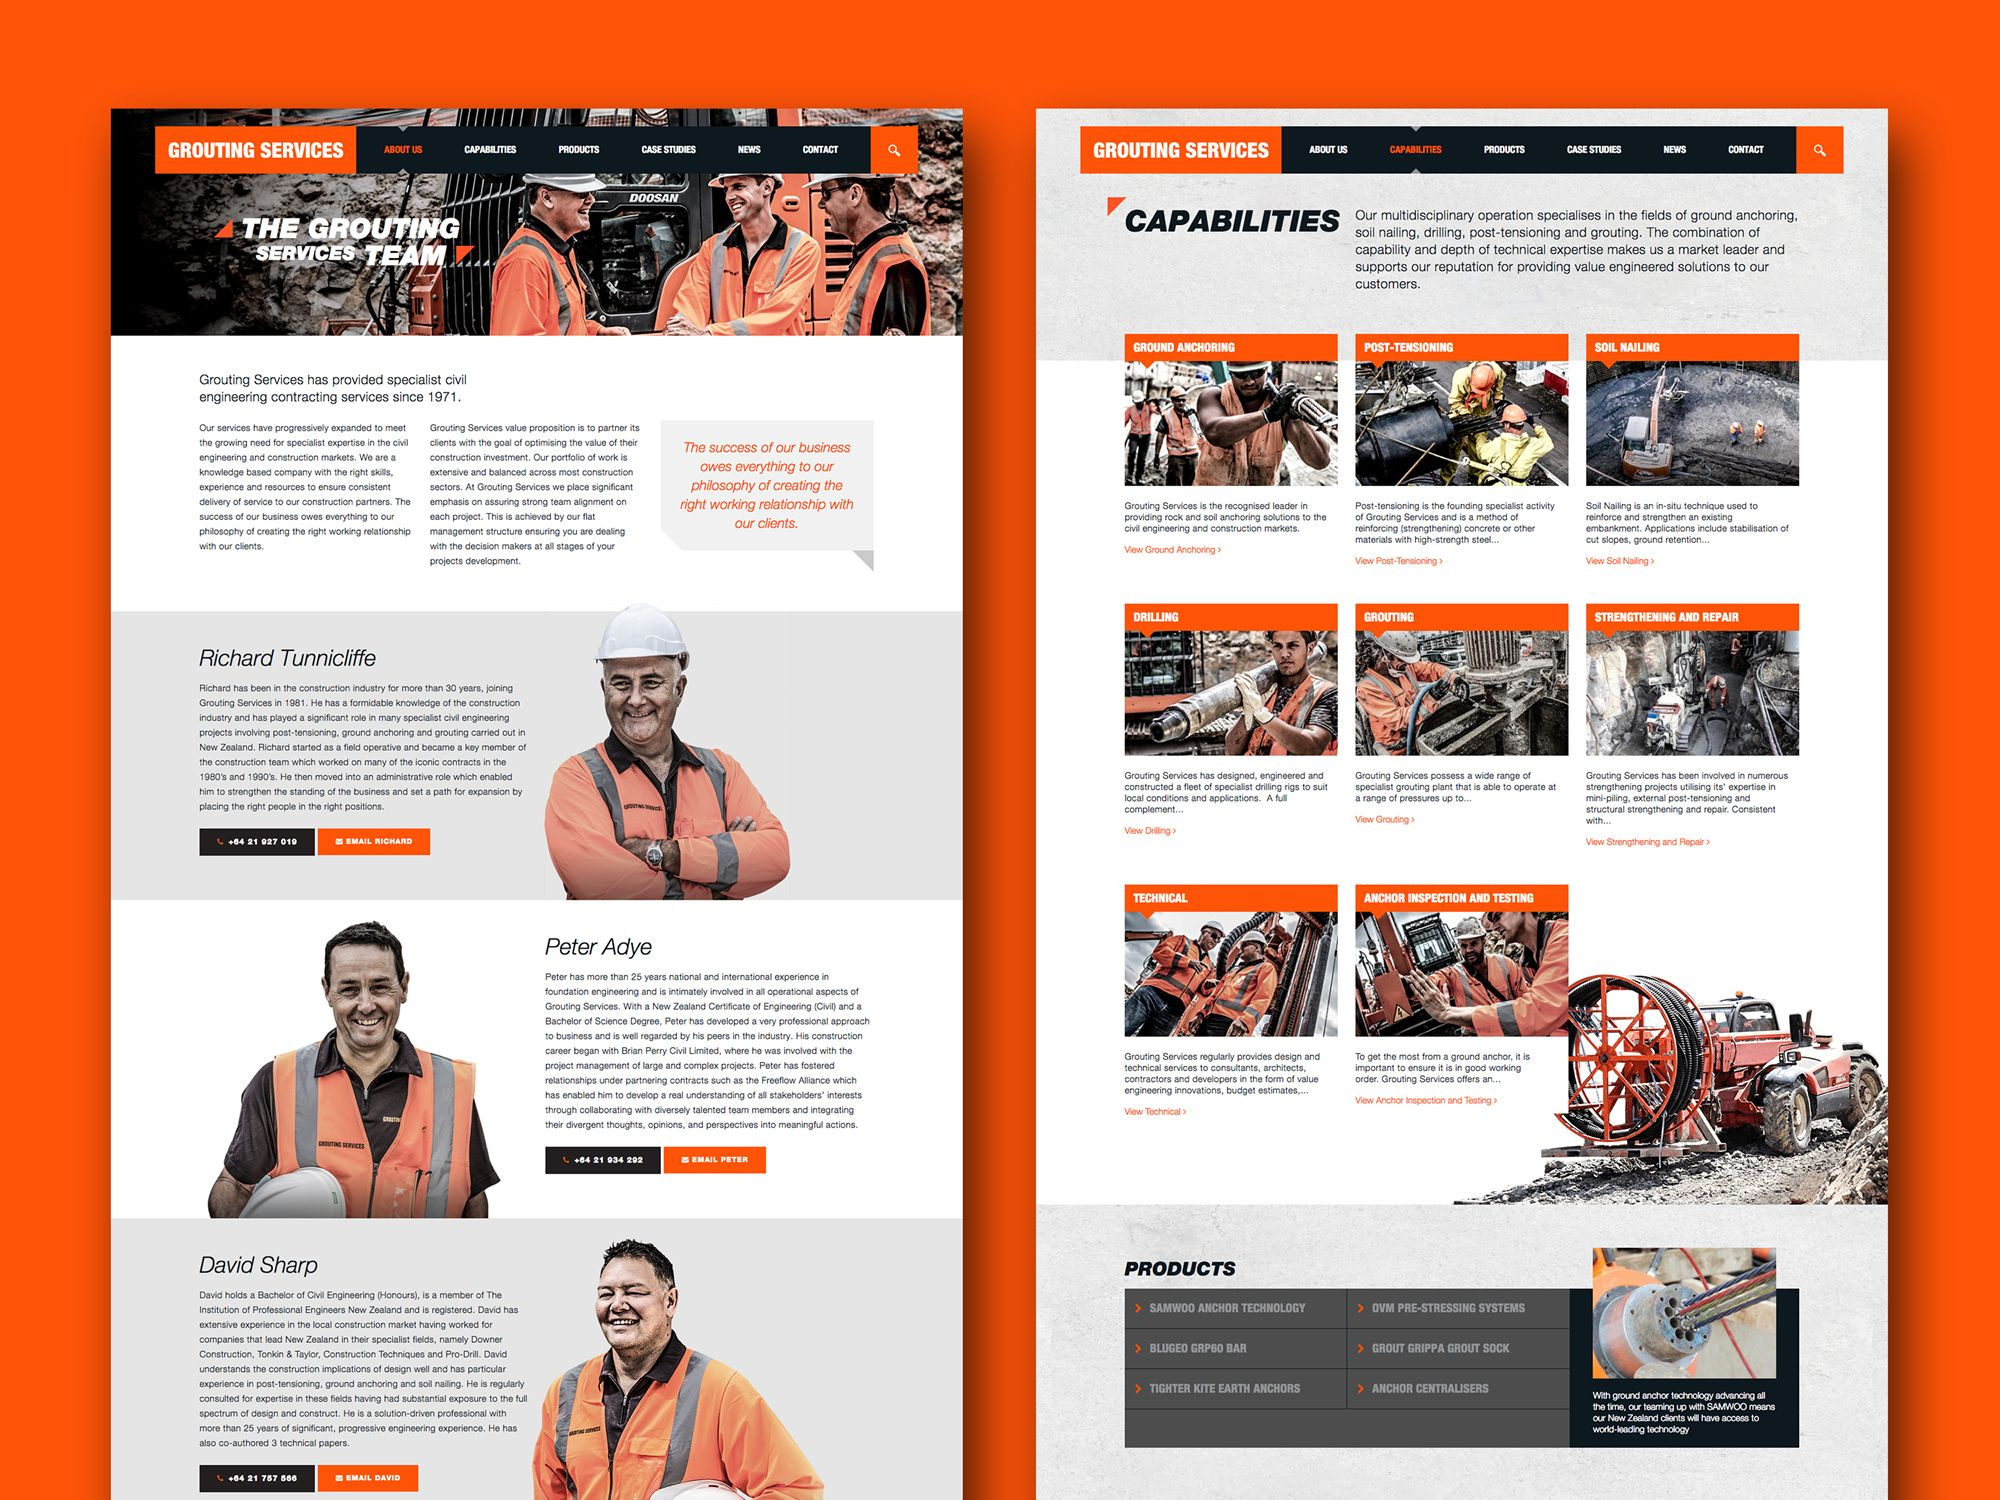 Onfire Design Grouting Services Branding Identity Website Design 3 Website Design Brand Identity Digital Design